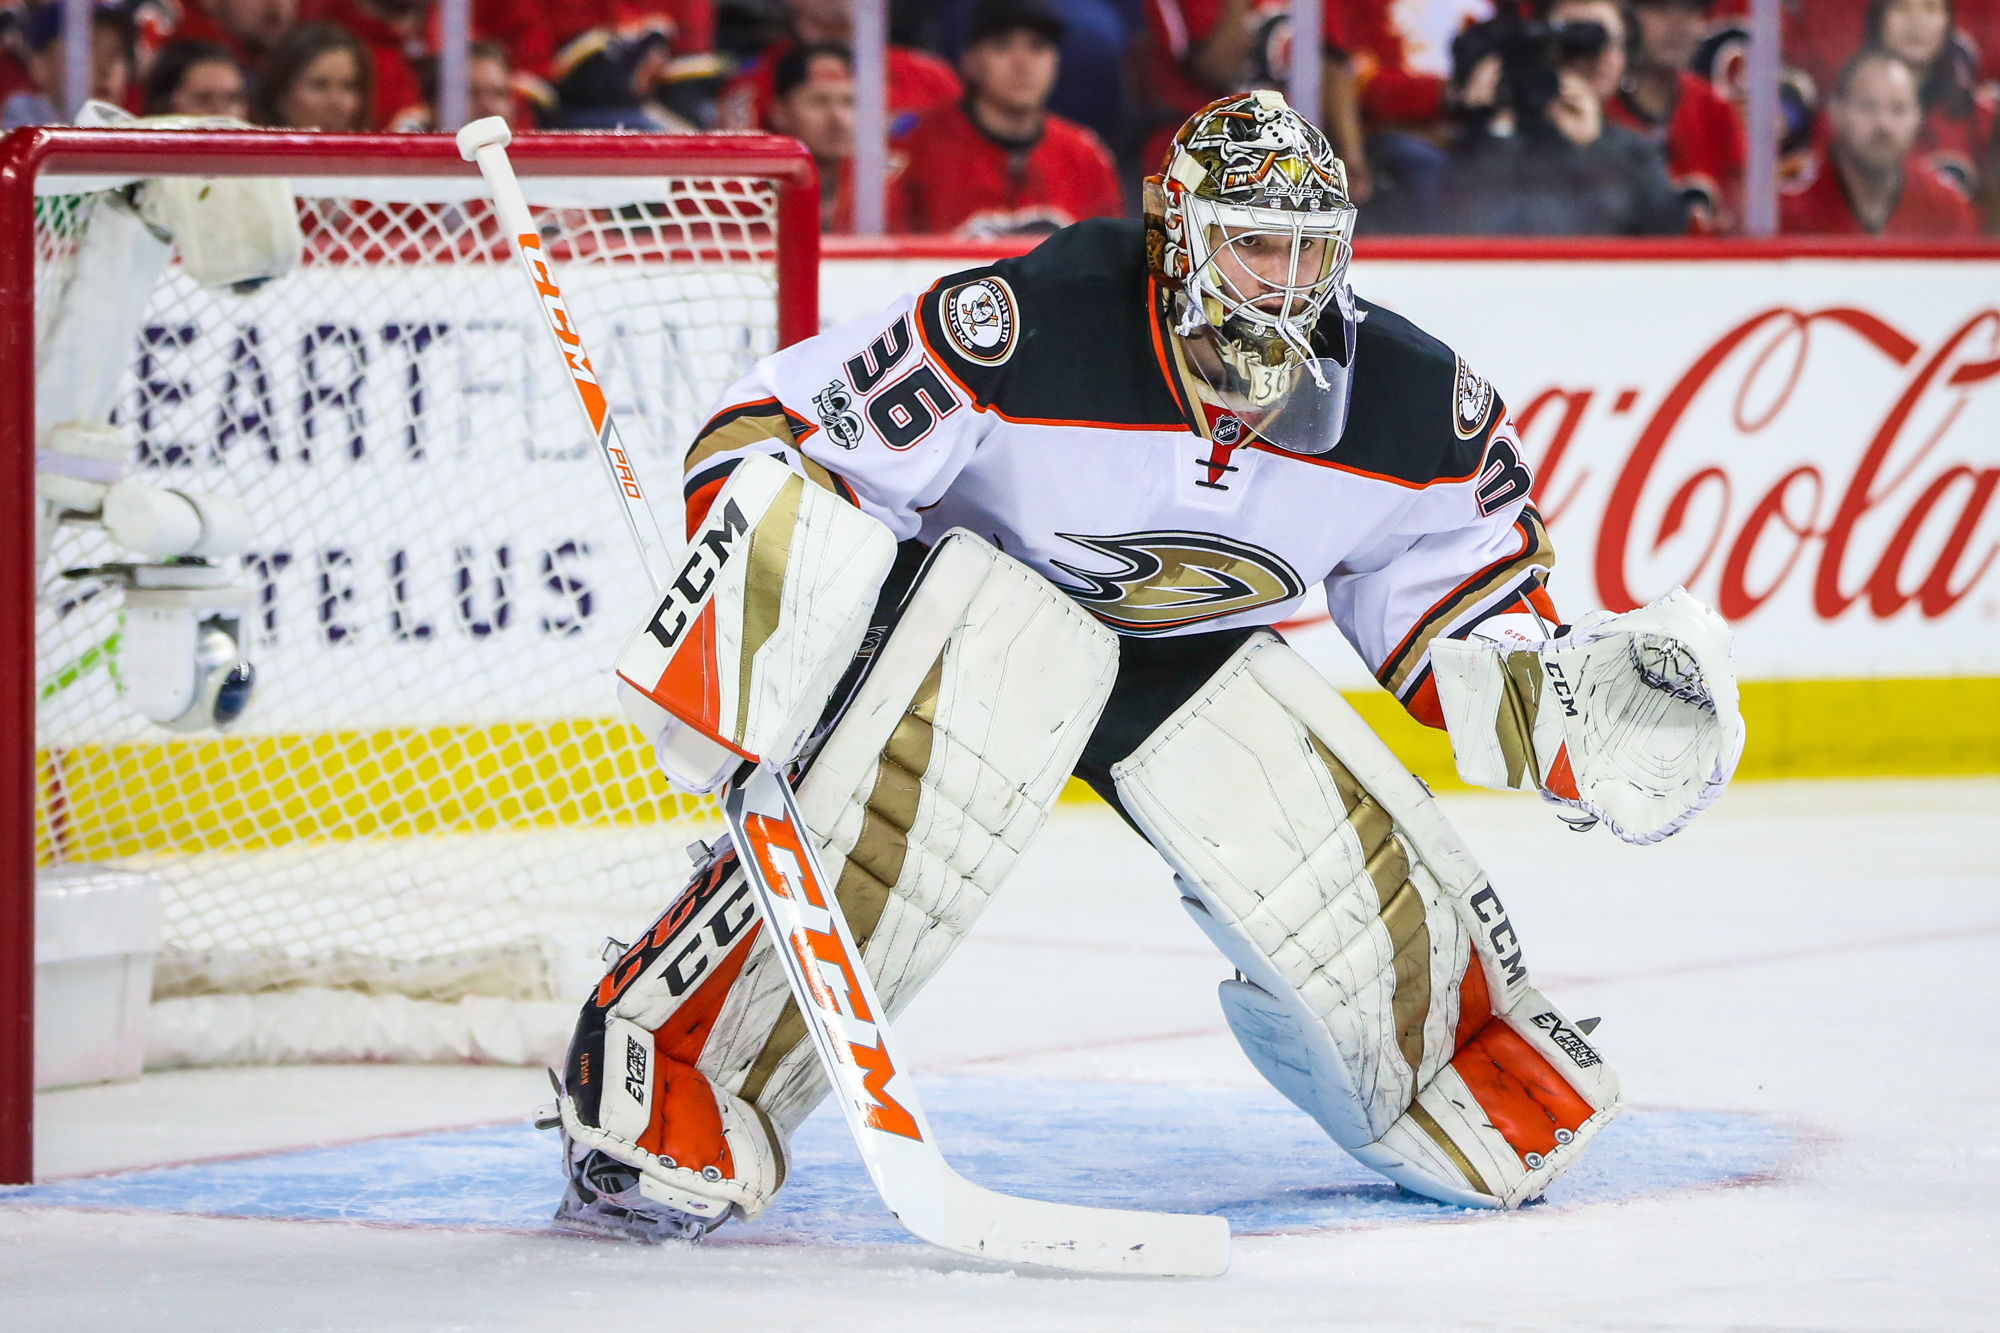 10021741-nhl-stanley-cup-playoffs-anaheim-ducks-at-calgary-flames